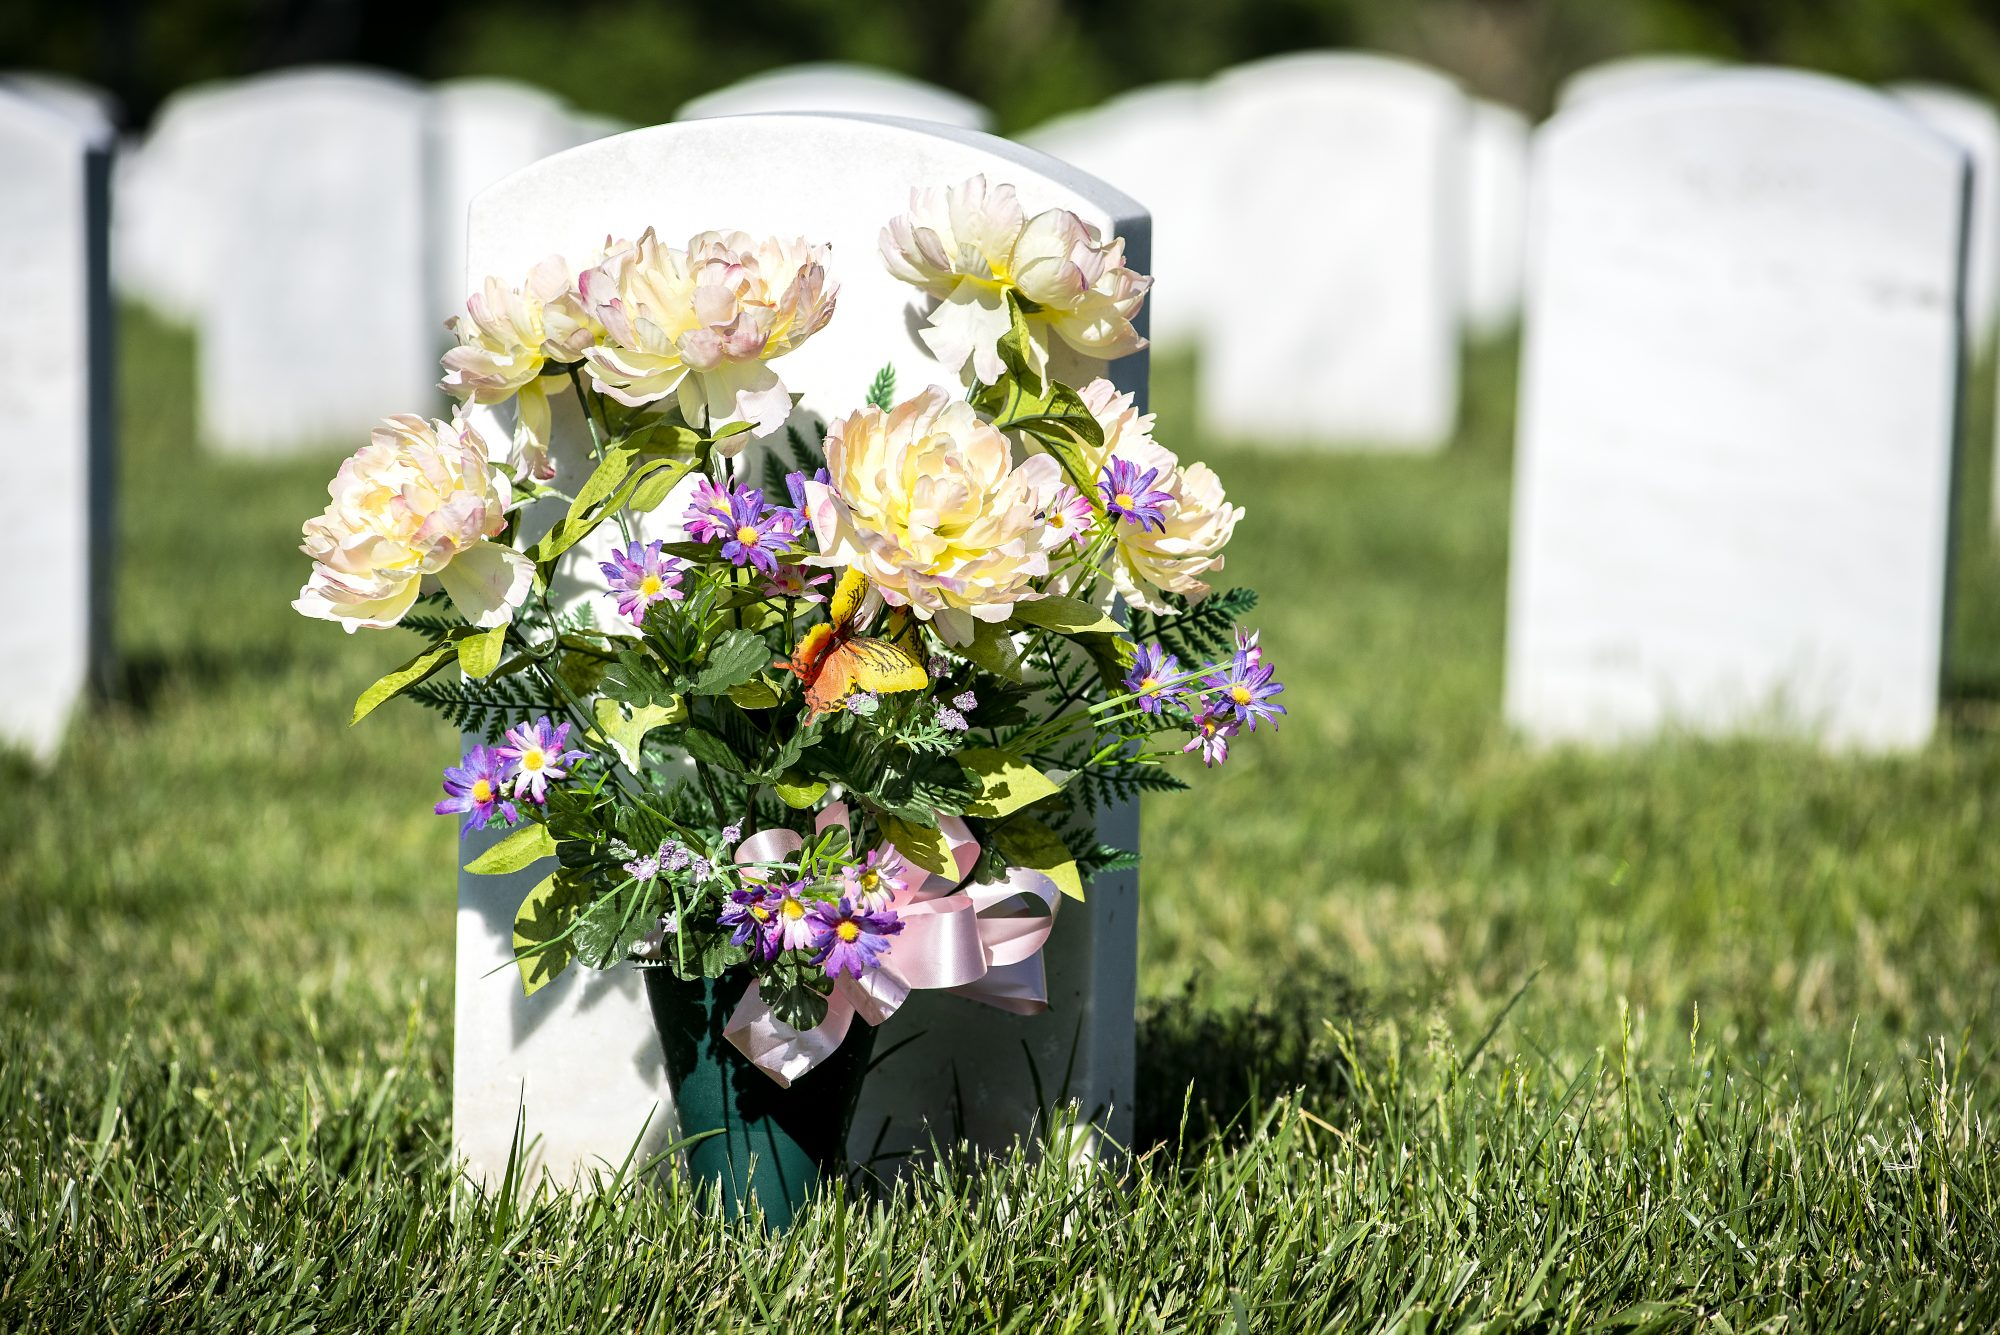 Cemetery with Flowers